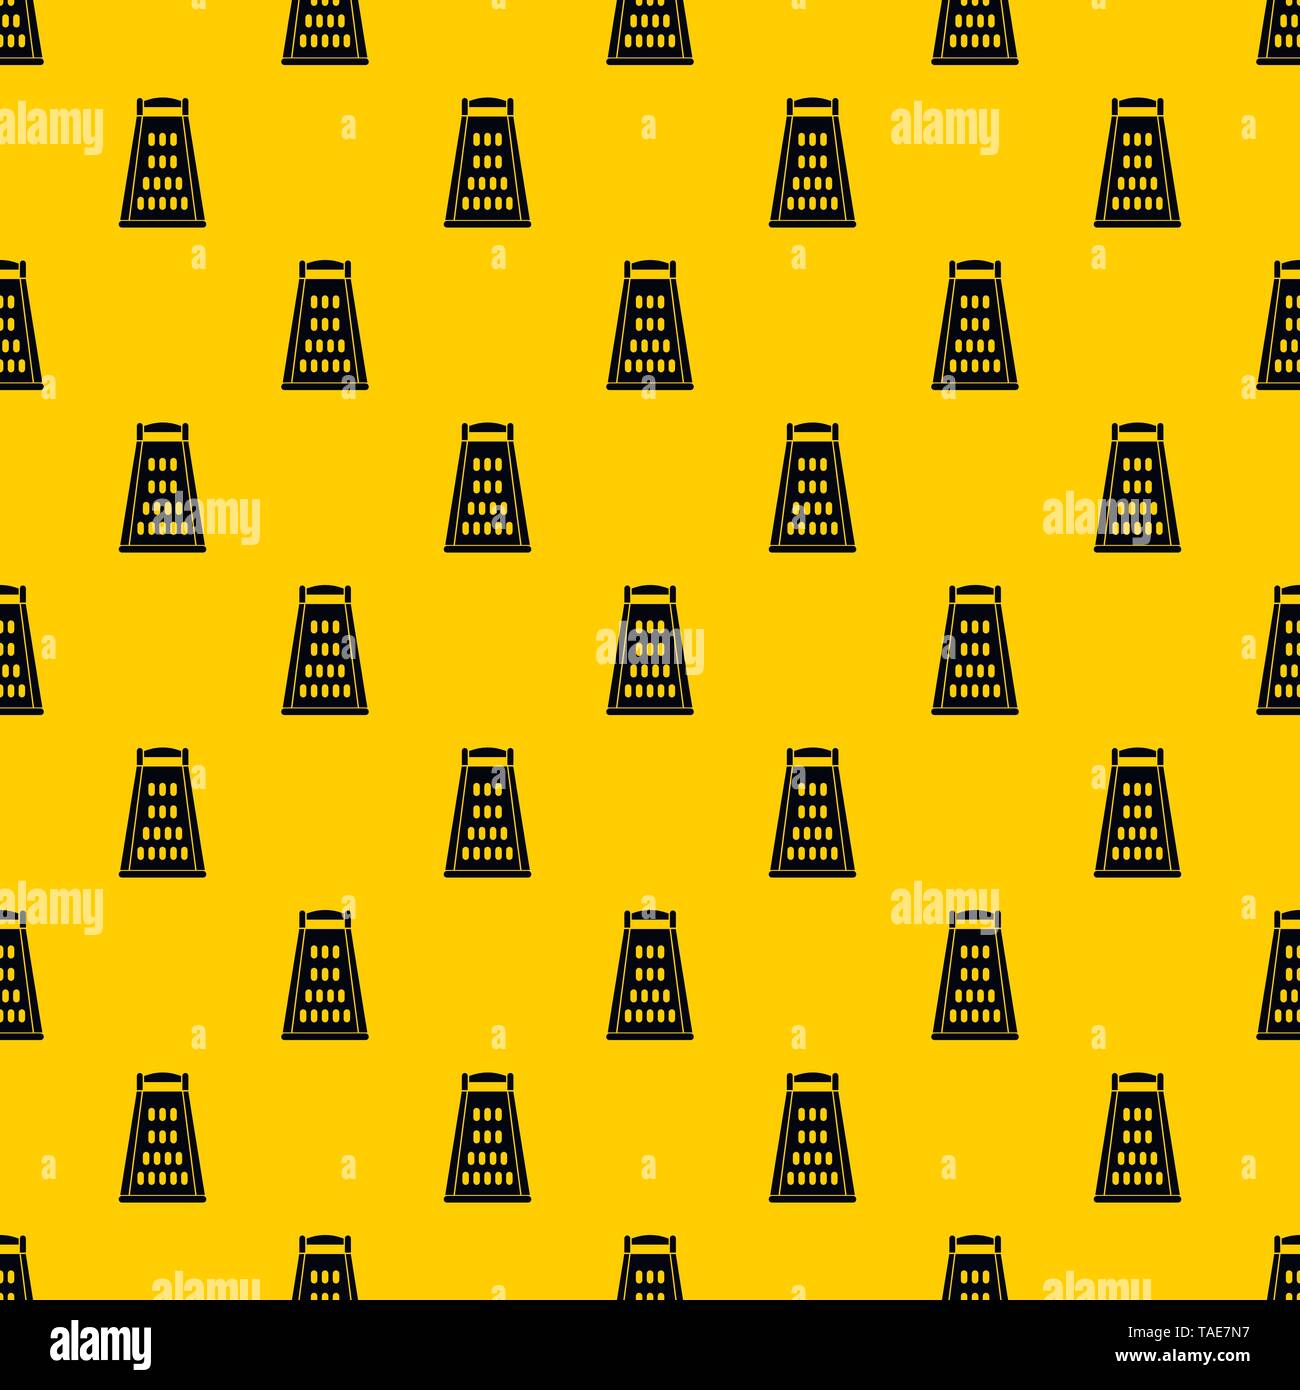 Kitchen grater pattern vector - Stock Image